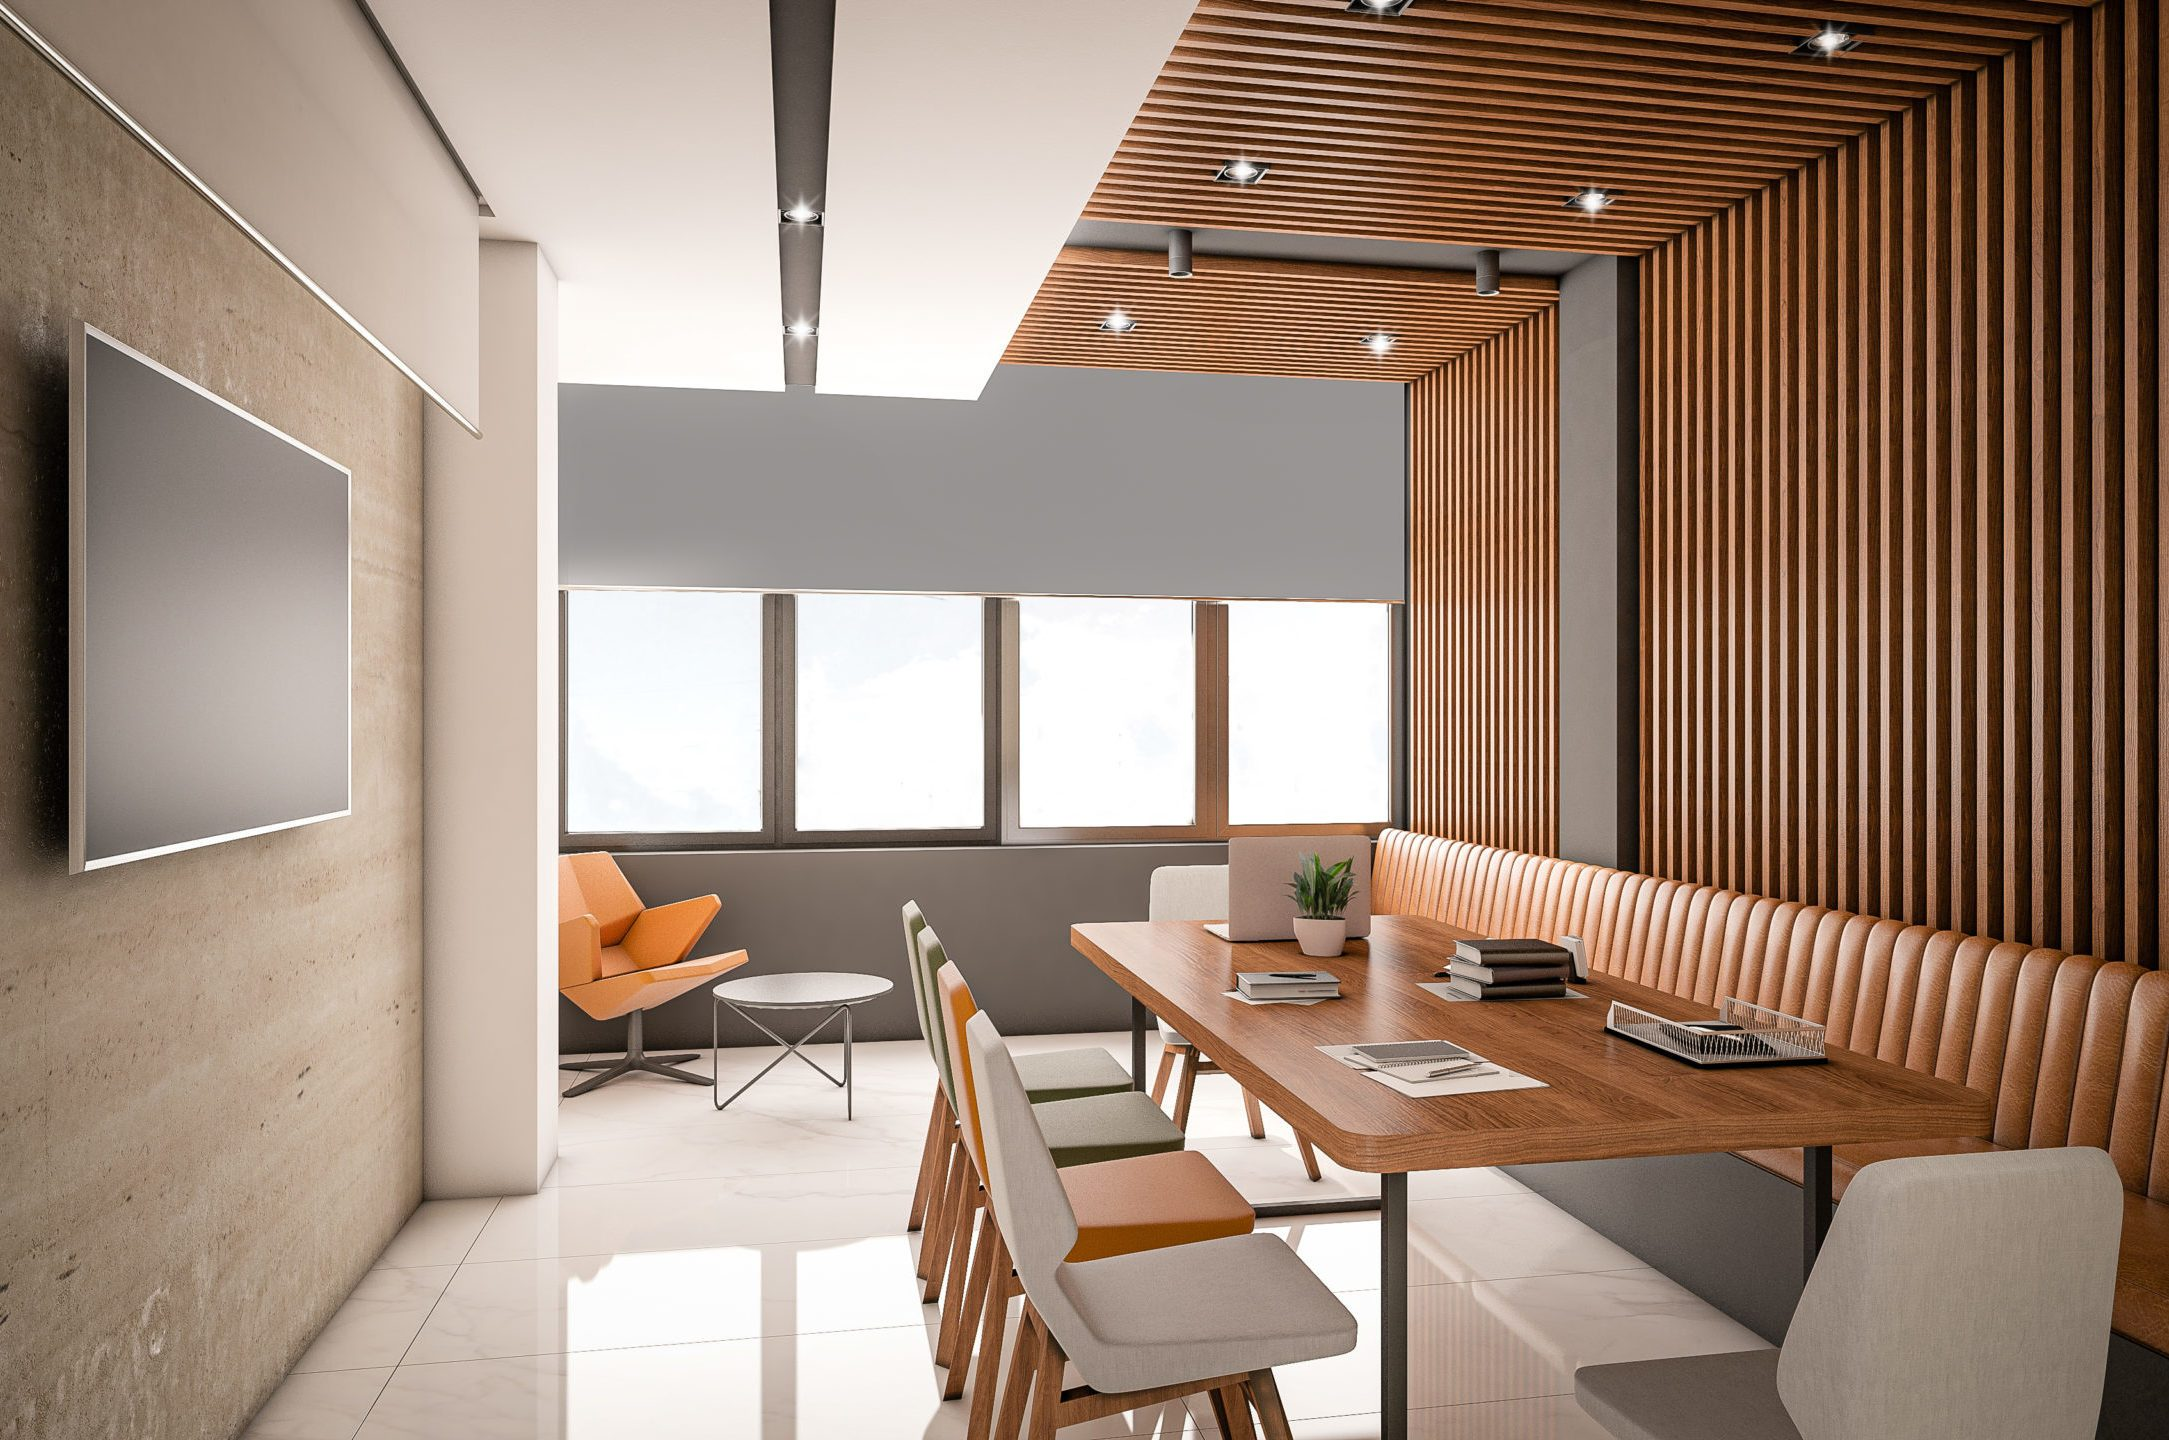 Computer generated image of Hotel Meeting and Conference Room. Architectural Visualization. 3D rendering. View 01